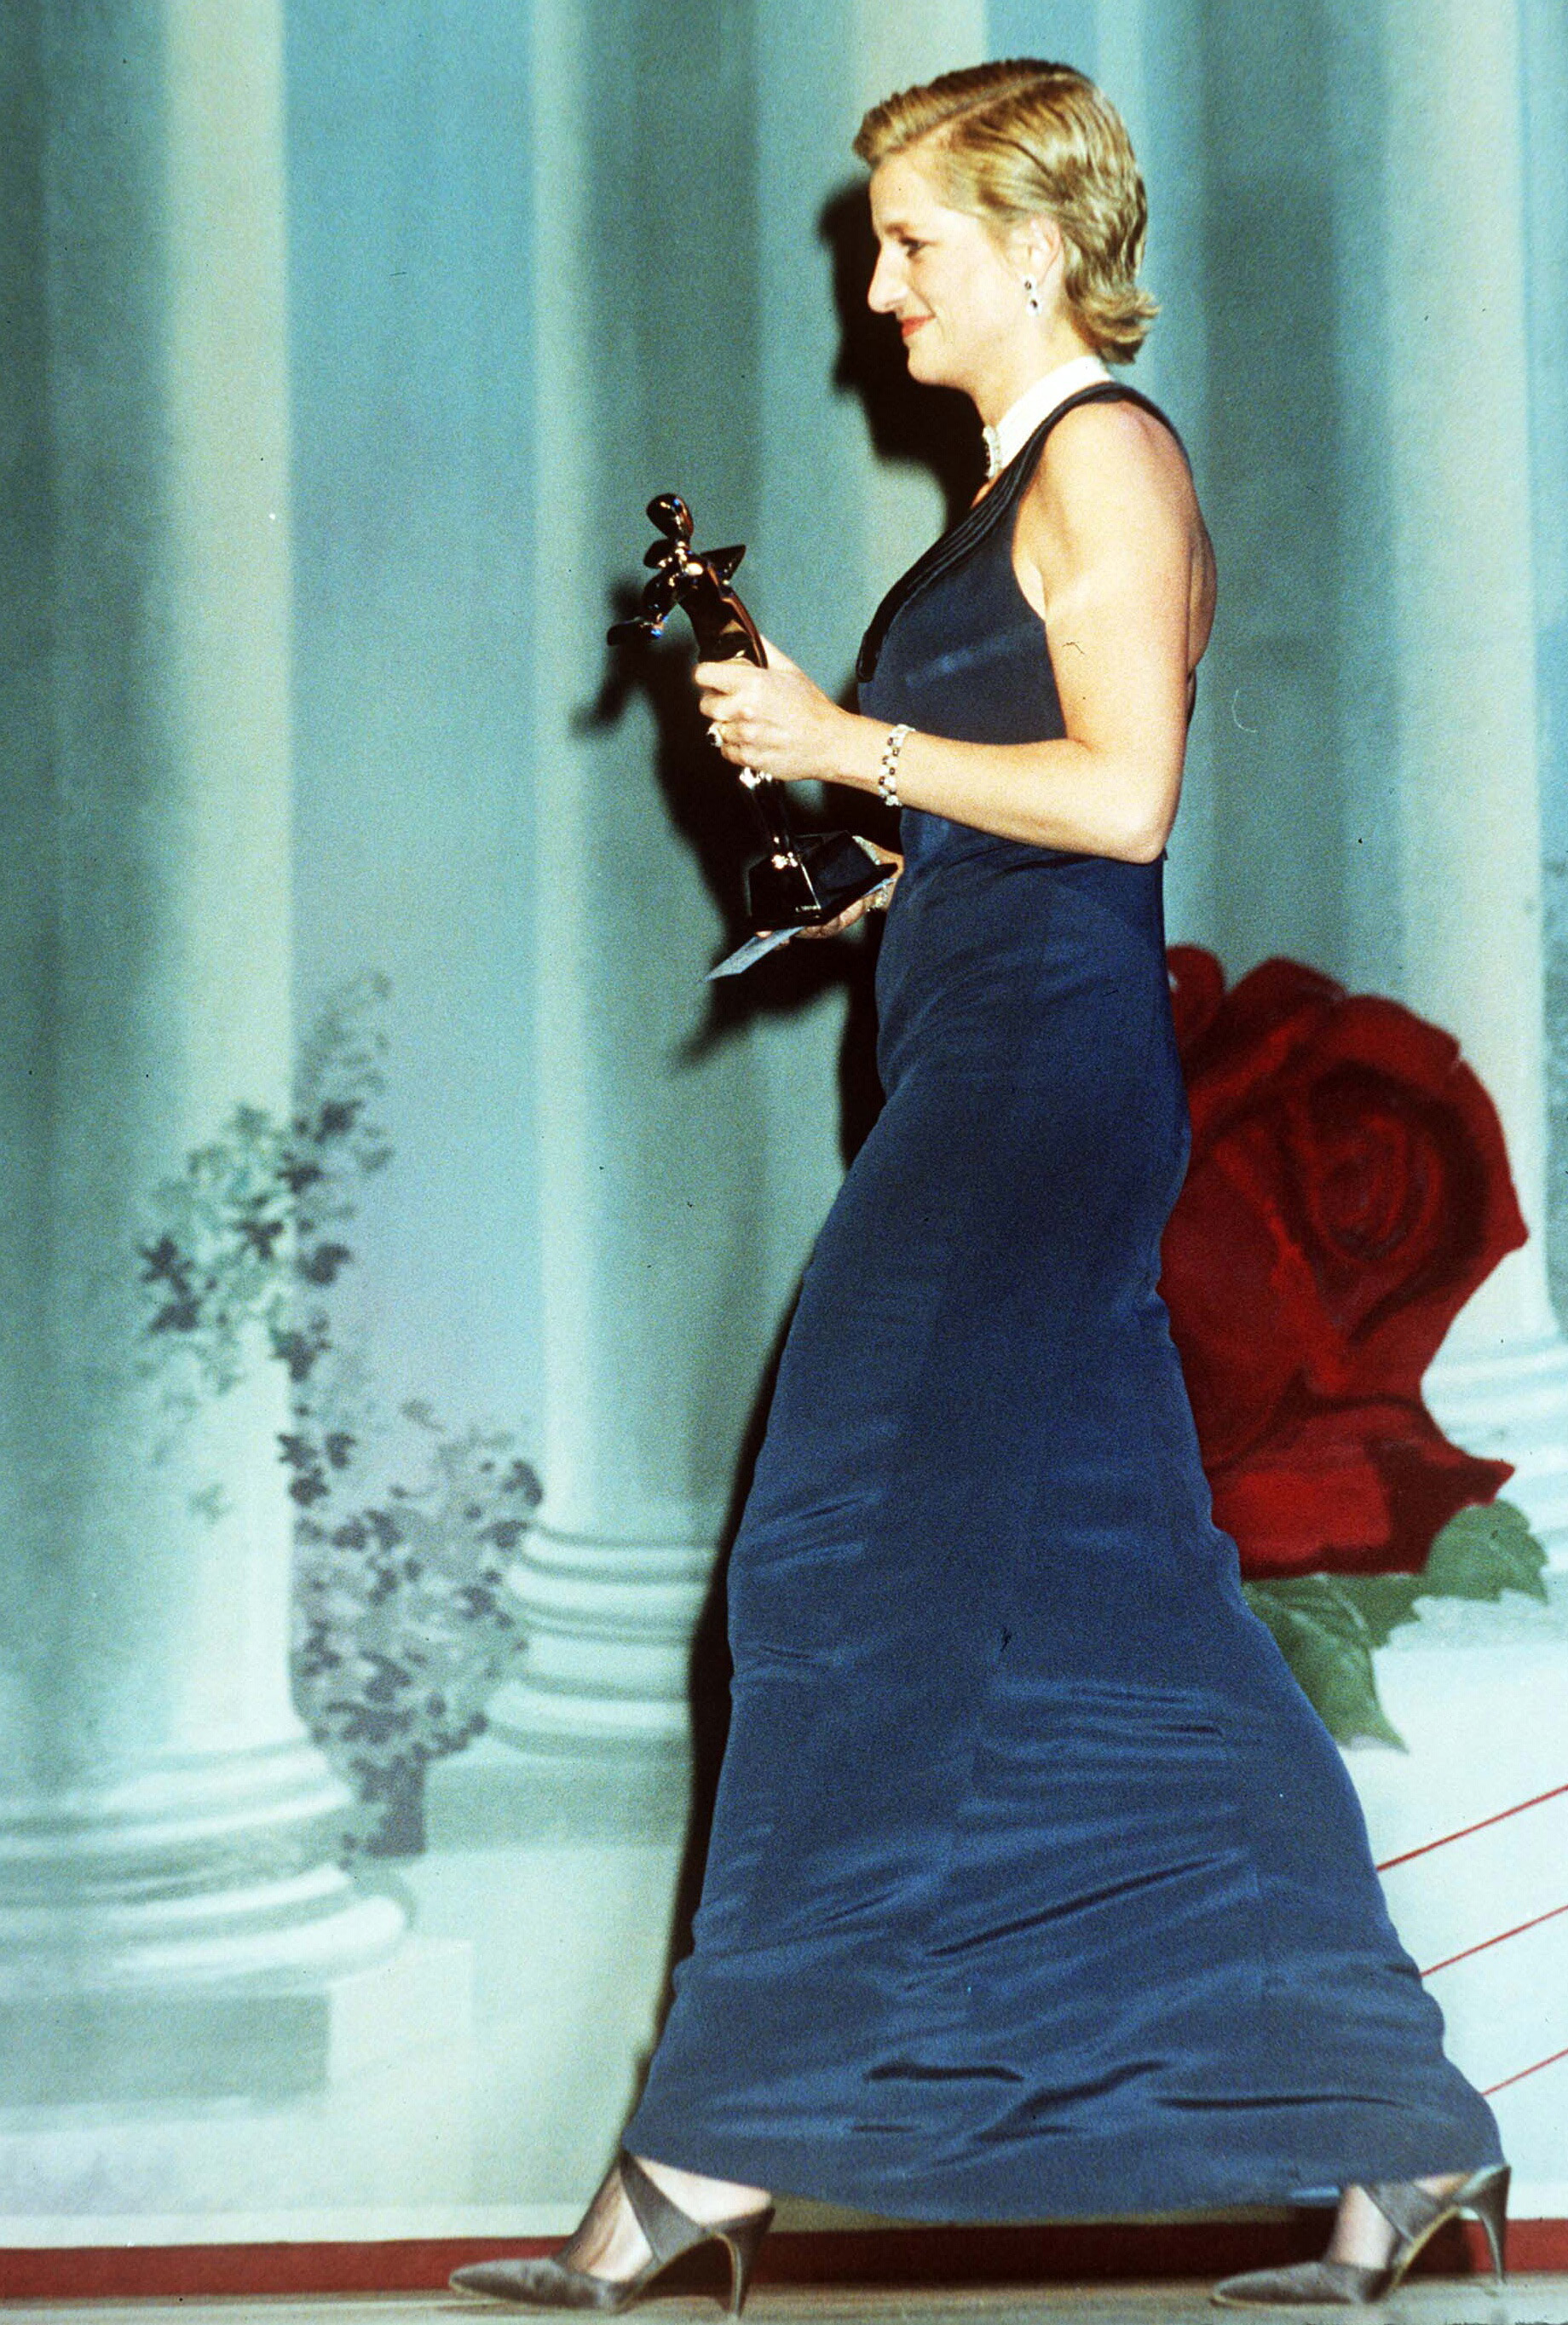 To honor her favorite designer Catherine Walker at a fashion awards ceremony in NYC, Diana wore a sleek navy gown of Walker's design.